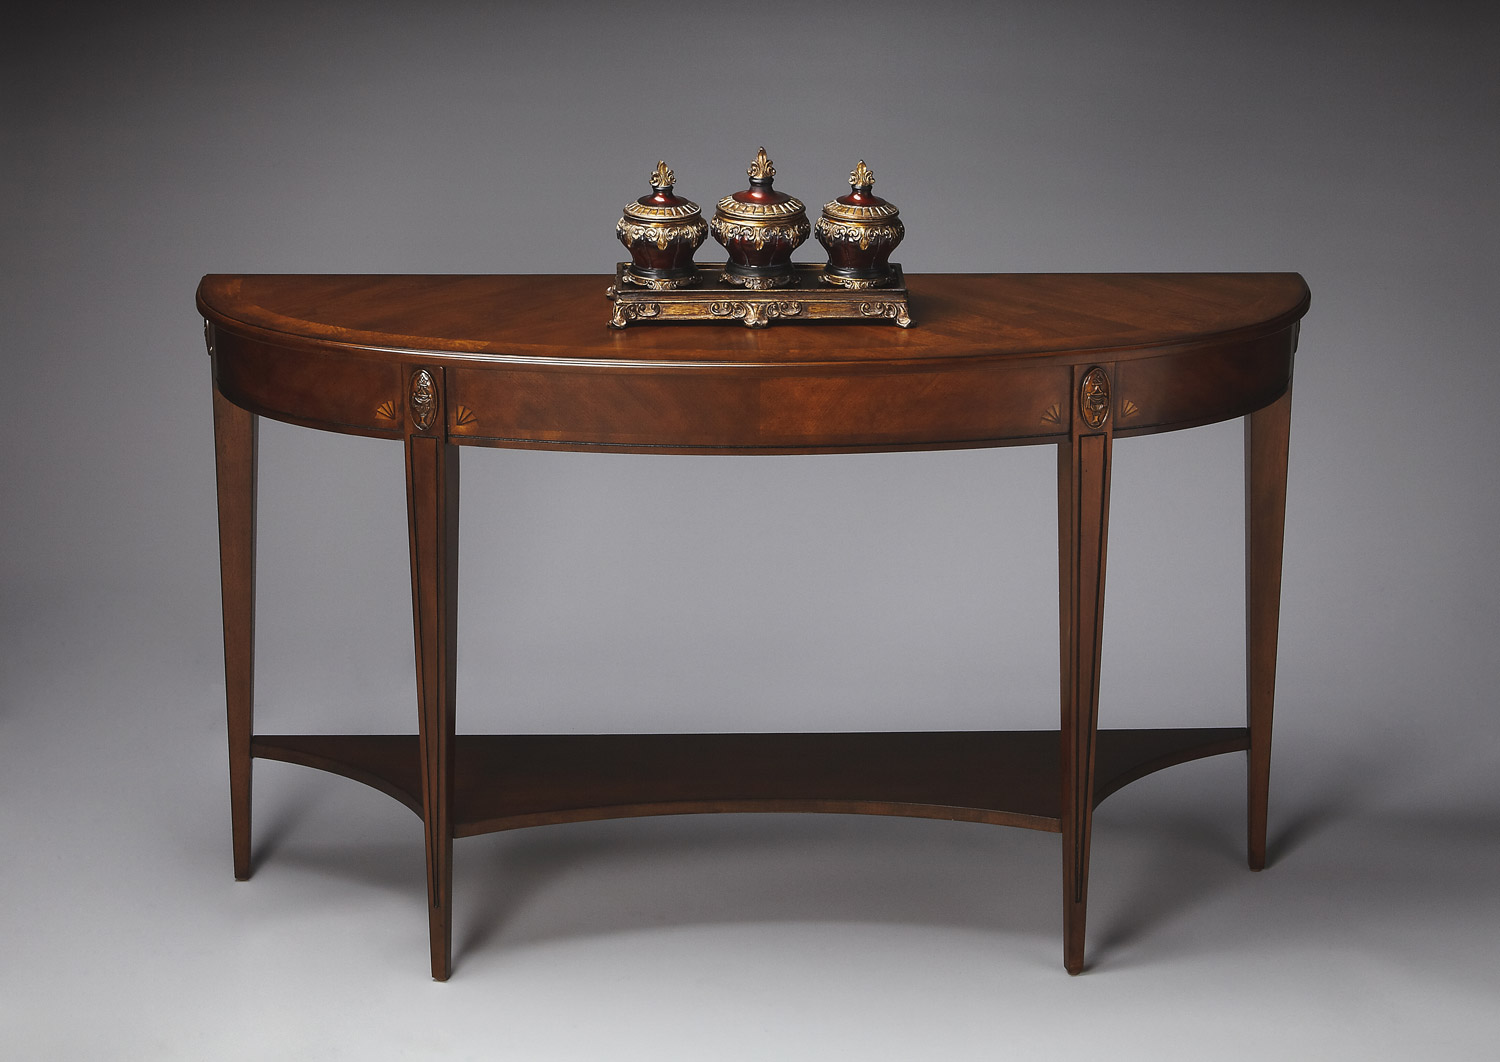 Butler 4146251 Antique Cherry Demilune Console Table